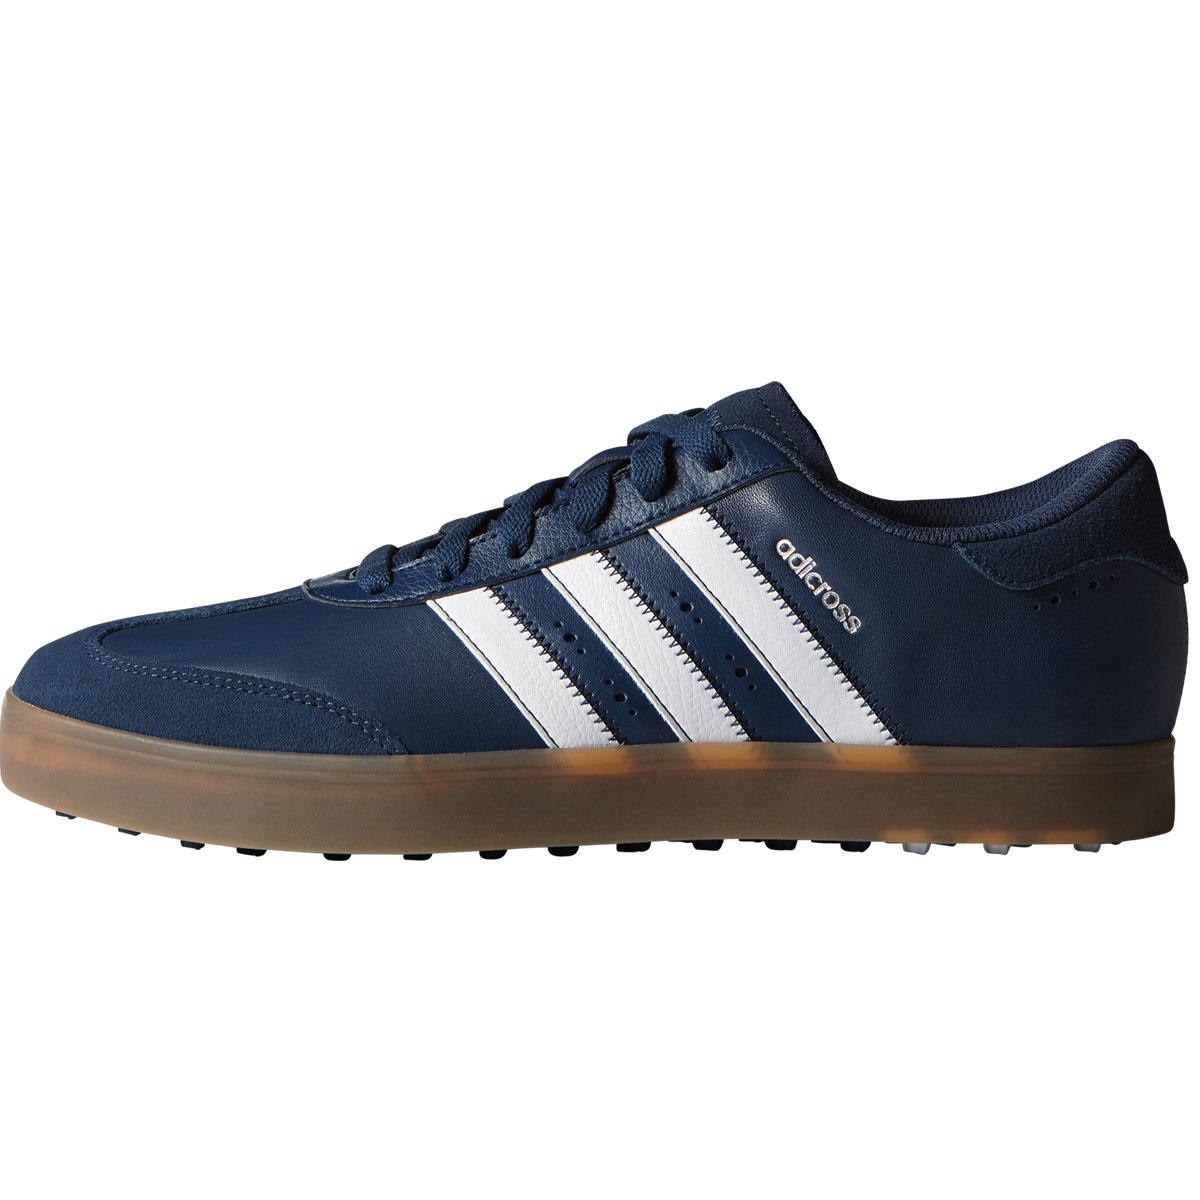 Adicross Golf Shoes Ebay